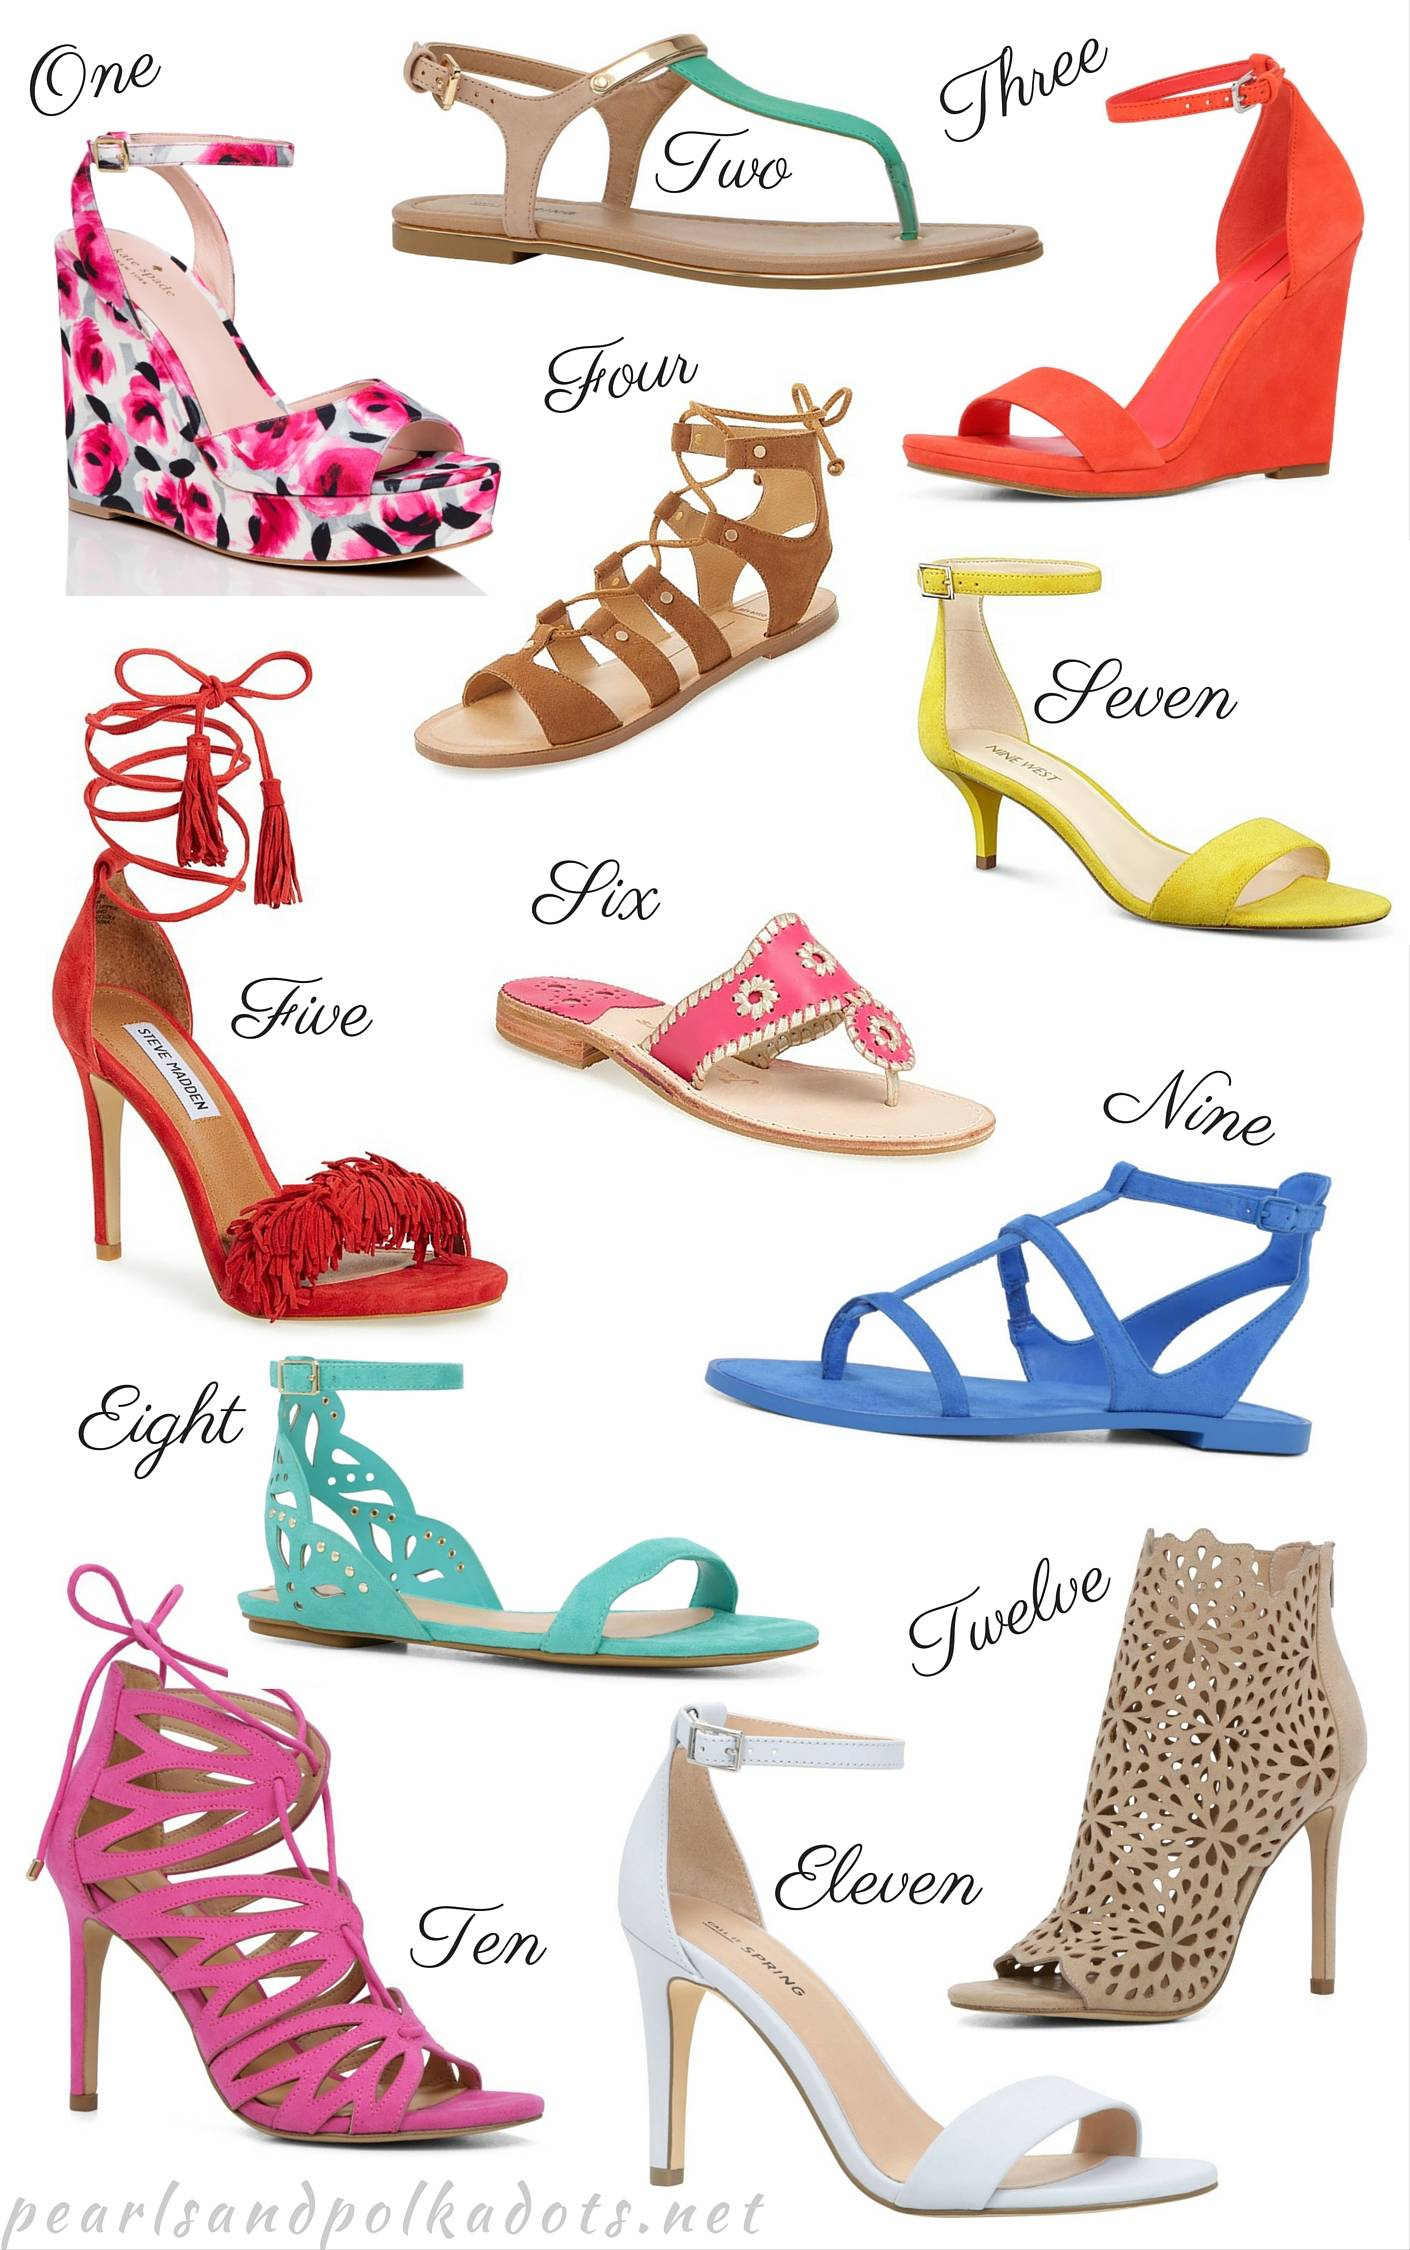 12 Pairs of Springy Shoes You Need this Season! - Pearls and Polkadots